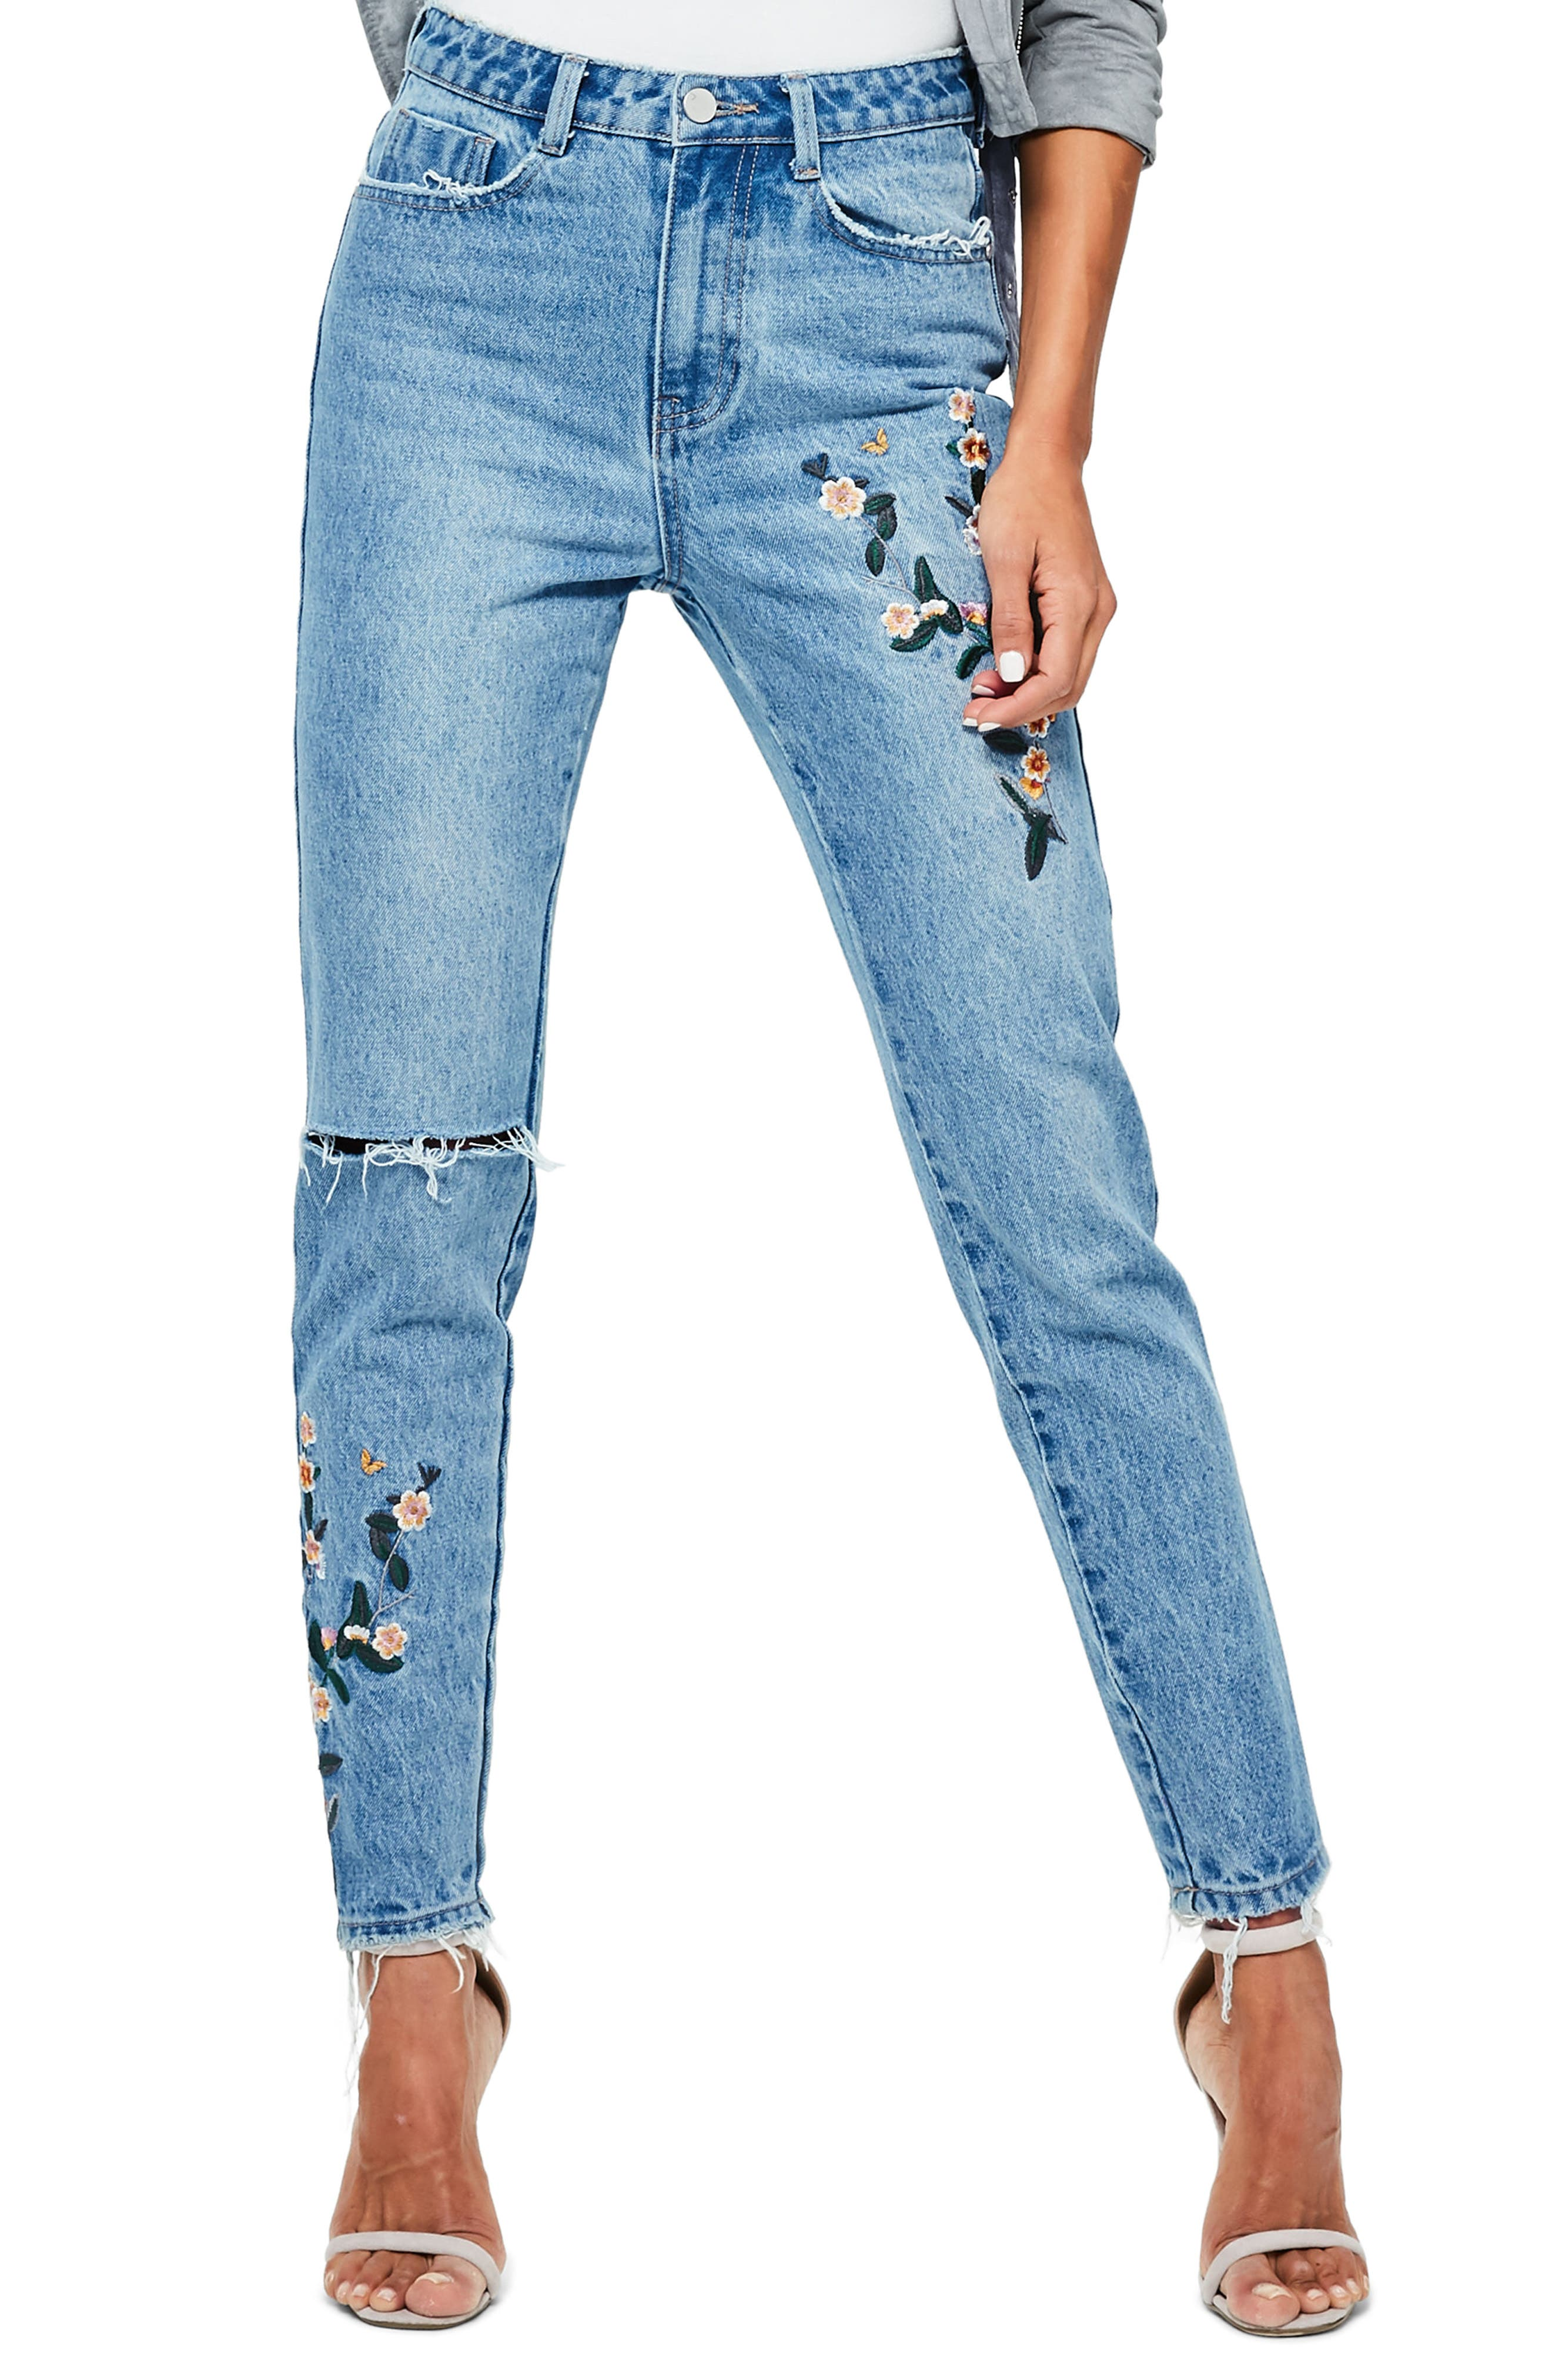 Riot Ripped High Waist Embroidered Jeans,                             Main thumbnail 1, color,                             Blue